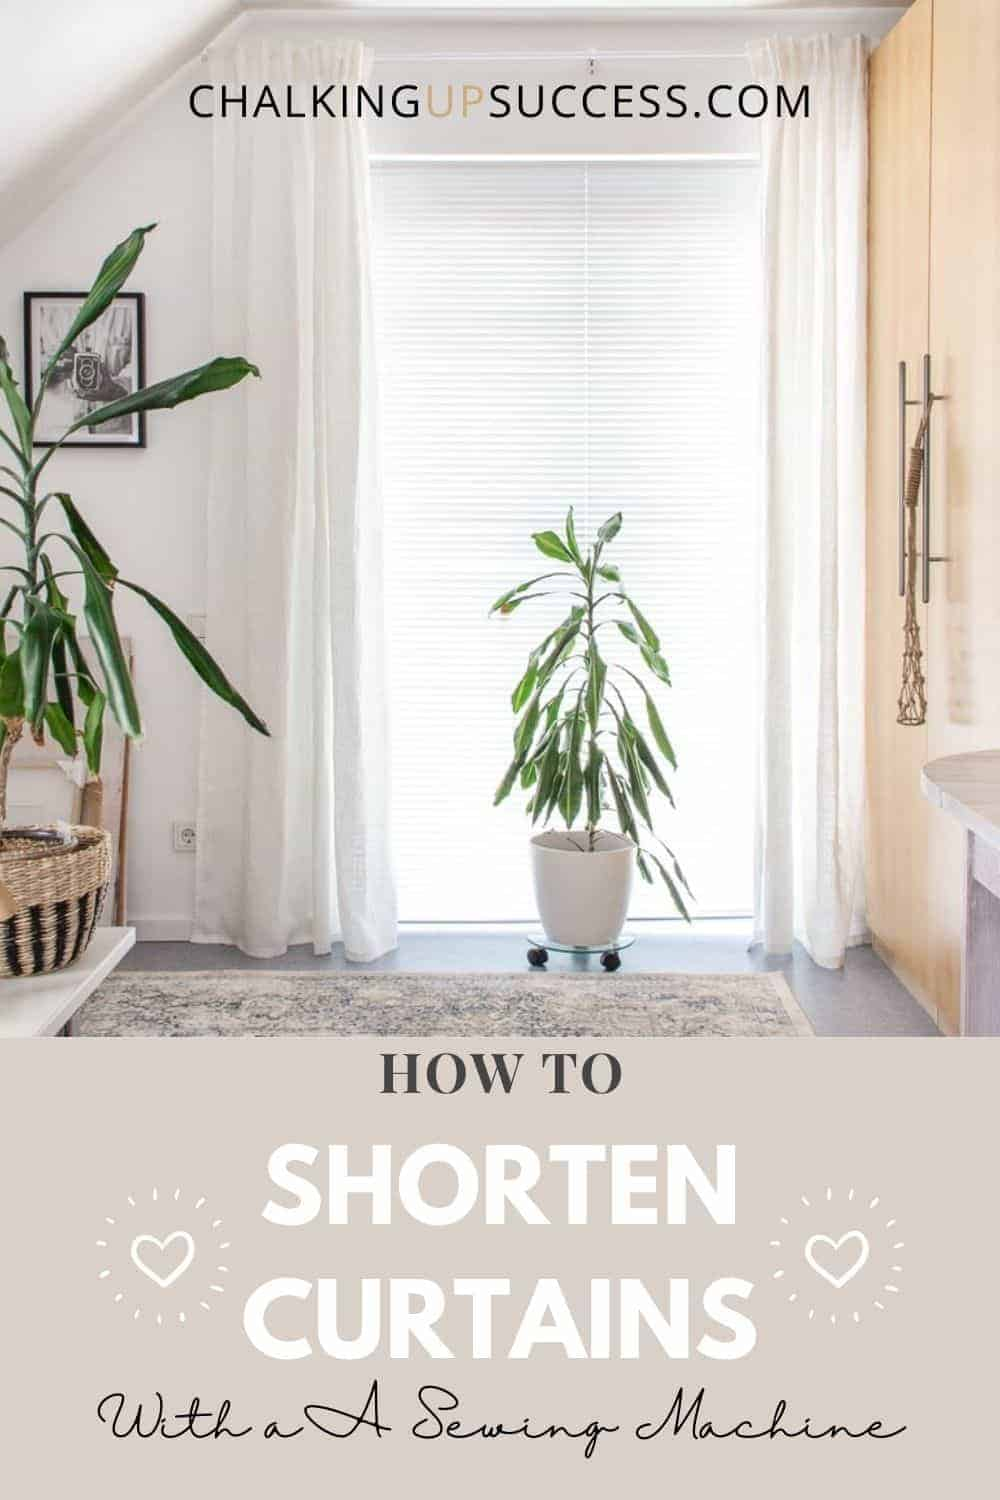 White linen curtains hanging at a window. A green plant and a white pot stands between the curtains.